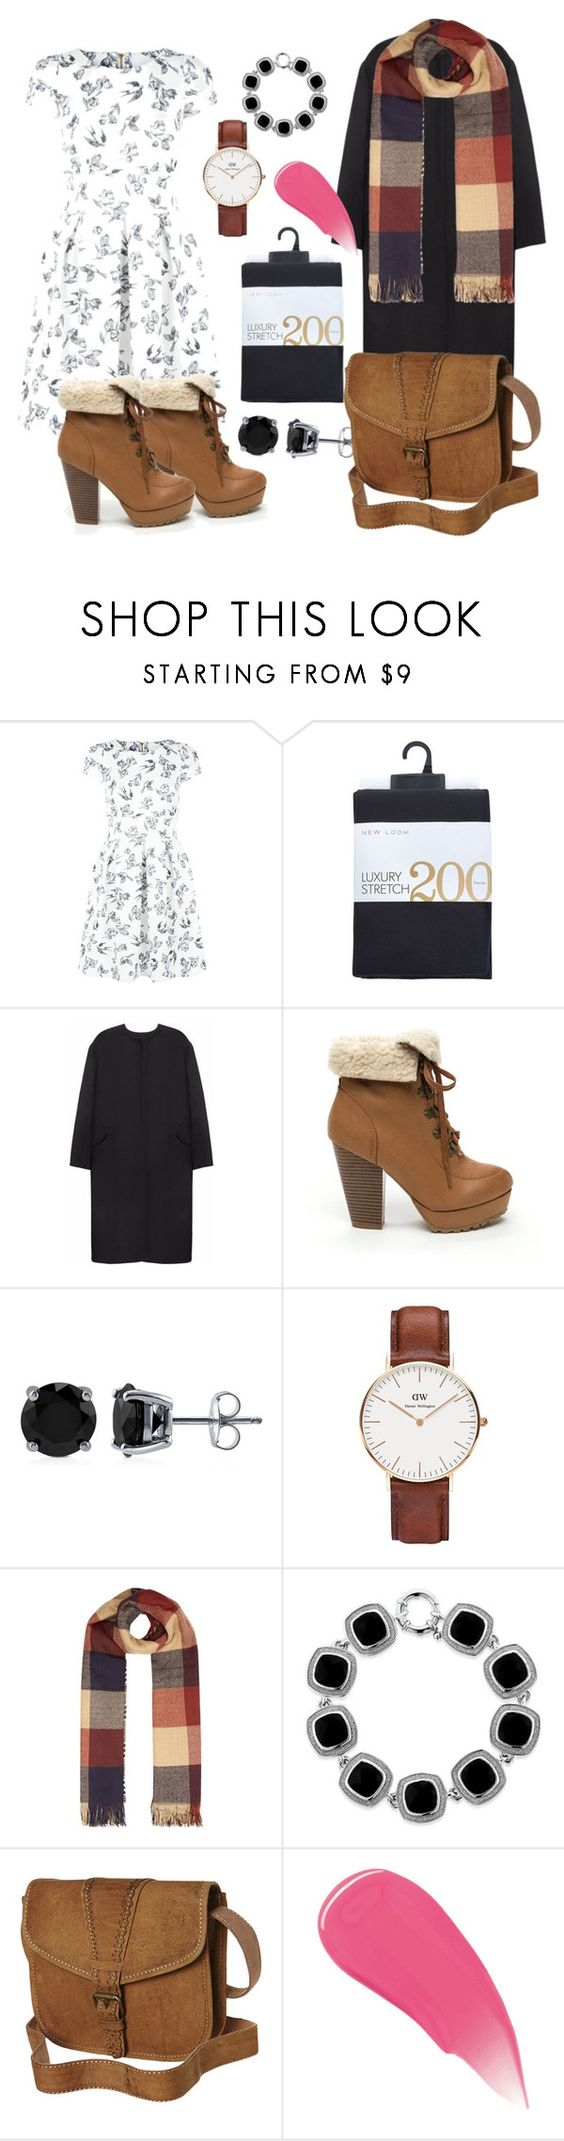 """Ootd#14"" by luludedid on Polyvore featuring Closet, Non, BERRICLE, Daniel Wellington, Belk & Co., Billabong and Burberry"